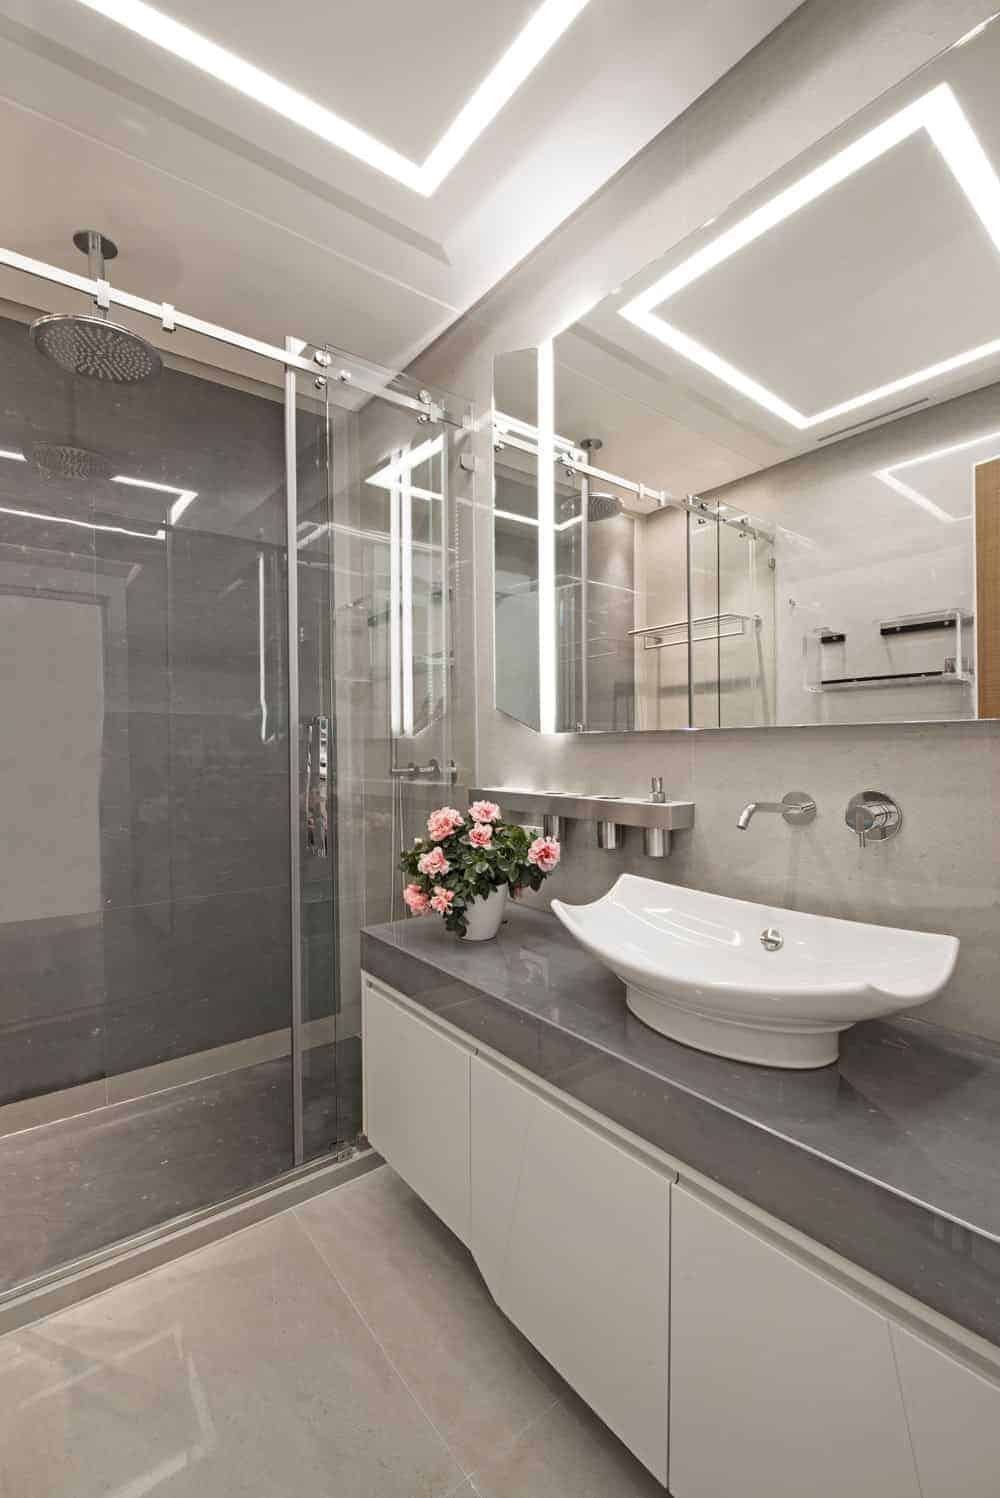 A classic master bathroom filled with a walk-in shower and a floating vanity topped by a vessel sink. It is accompanied by chrome fixtures and a frameless mirror fixed against the tiled wall.